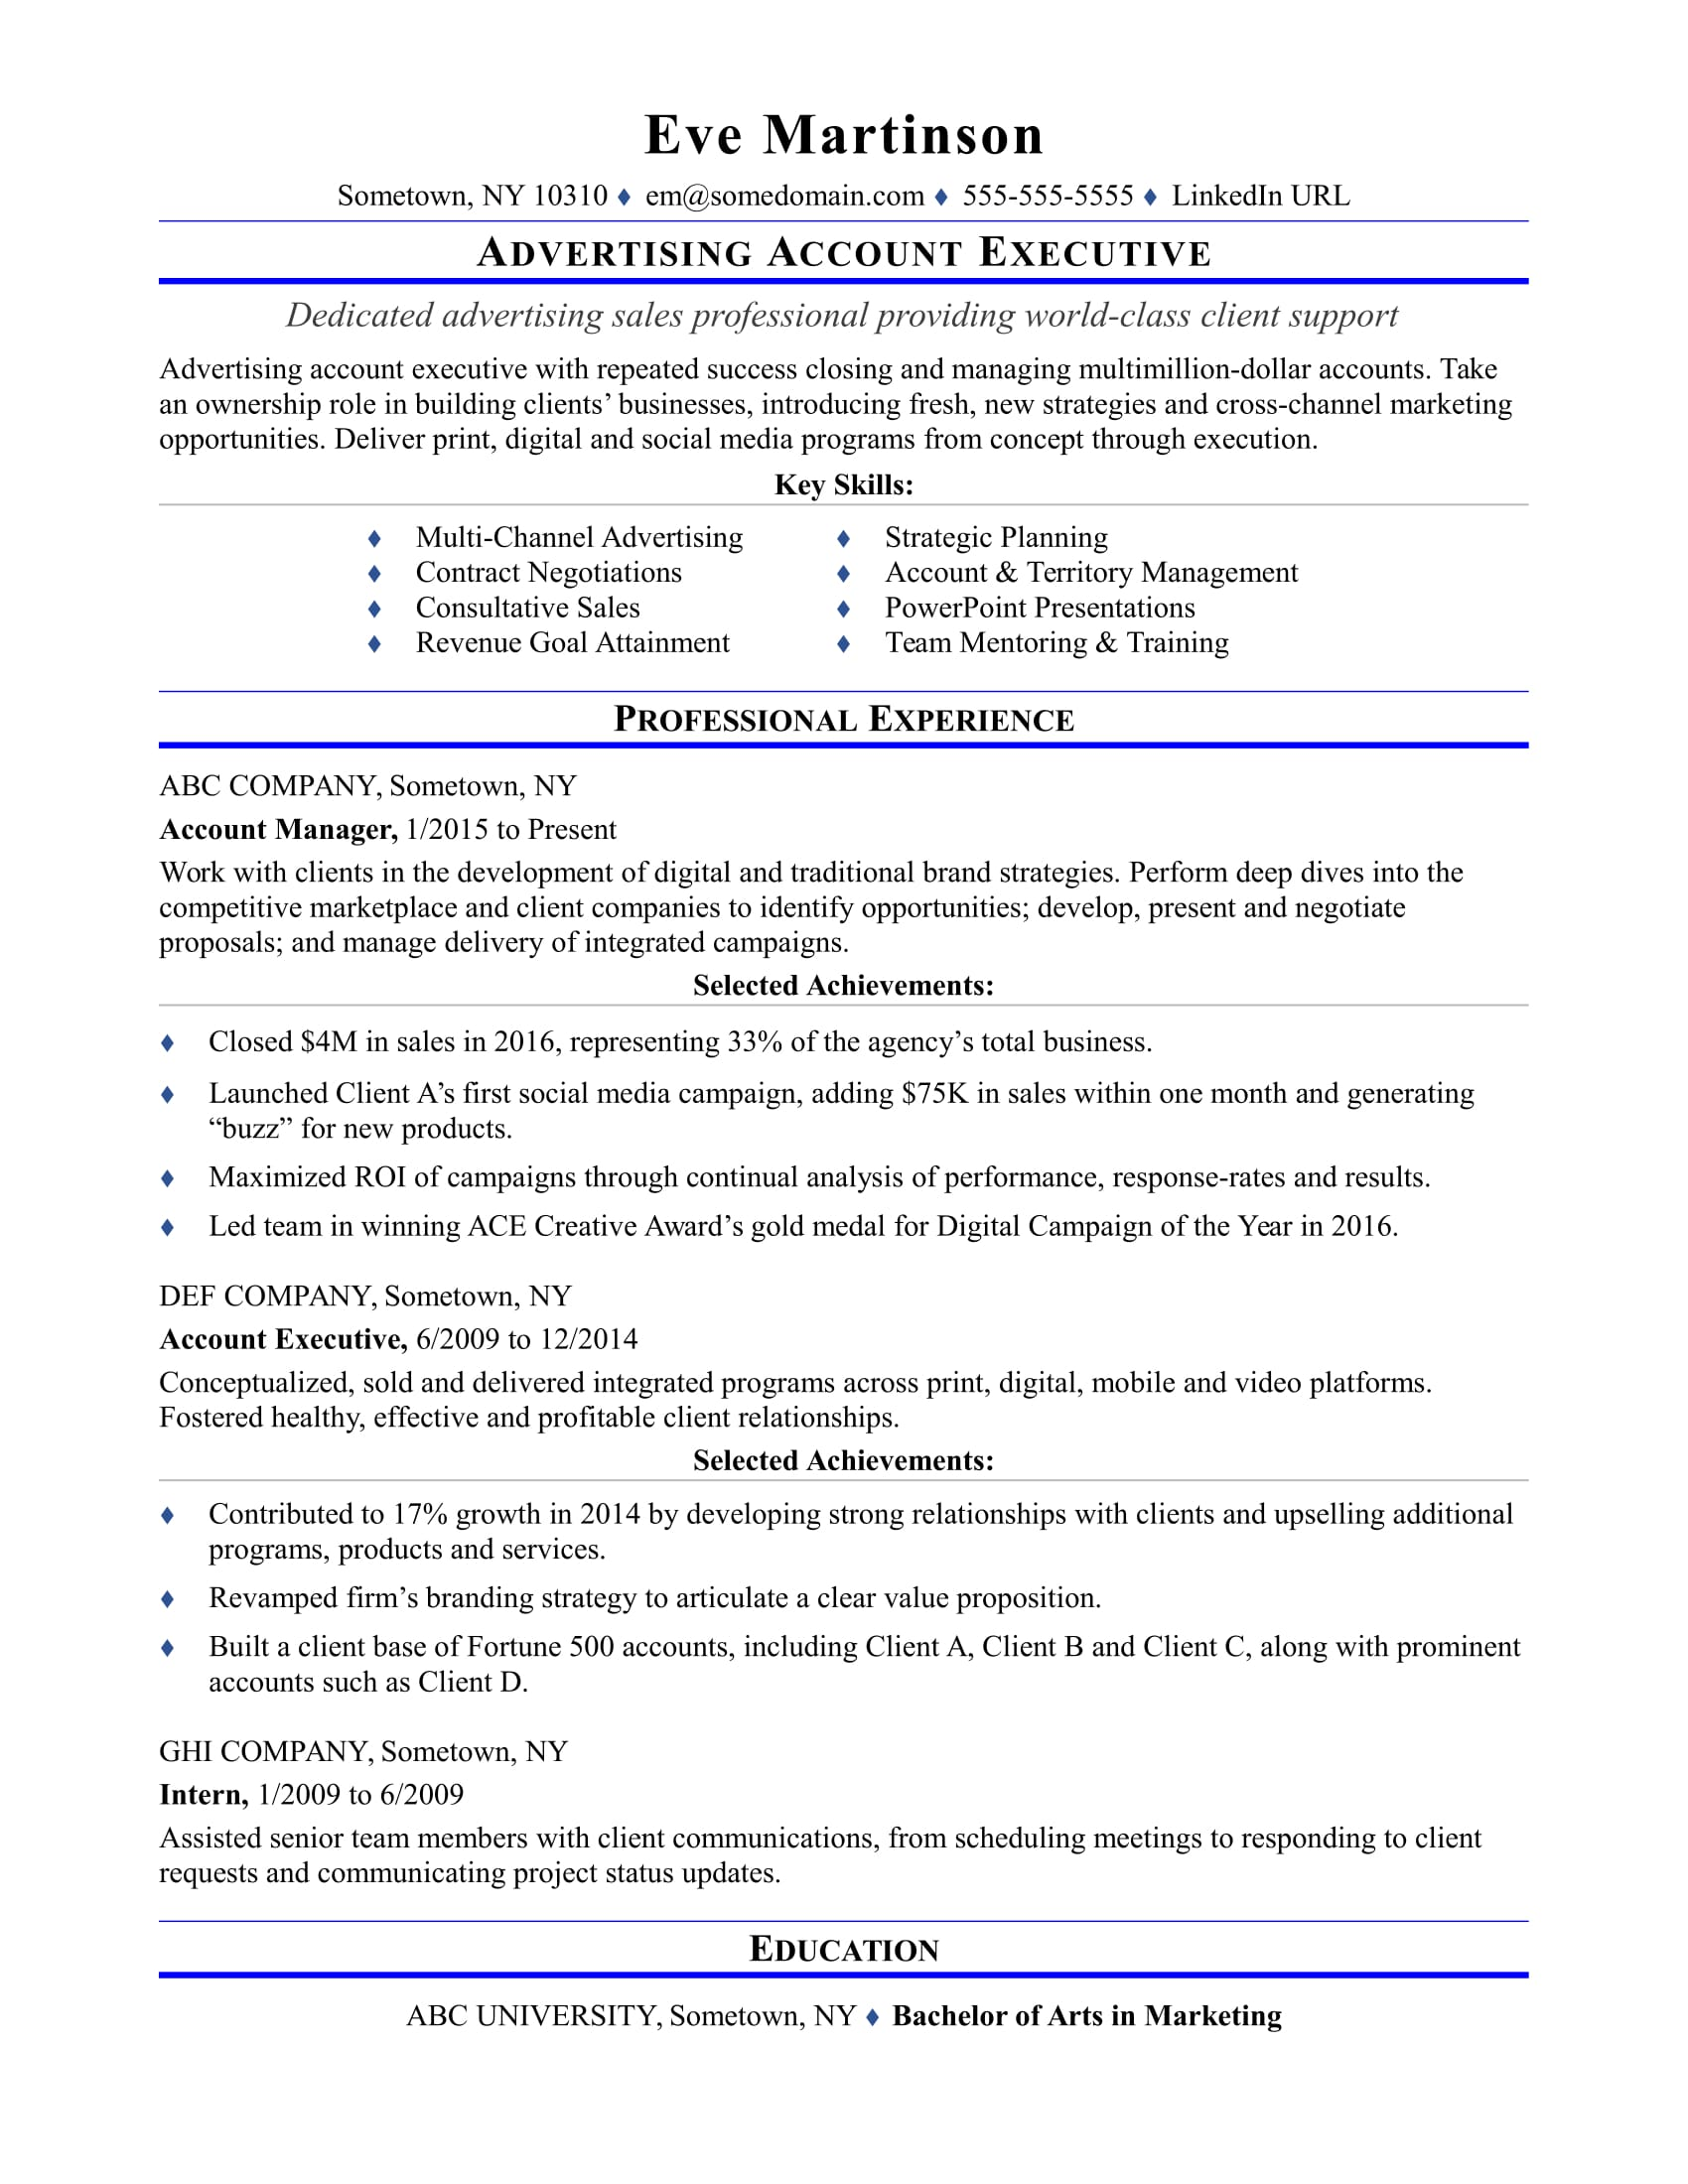 Sample Resume For An Advertising Account Executive Monstercom - Executive-resume